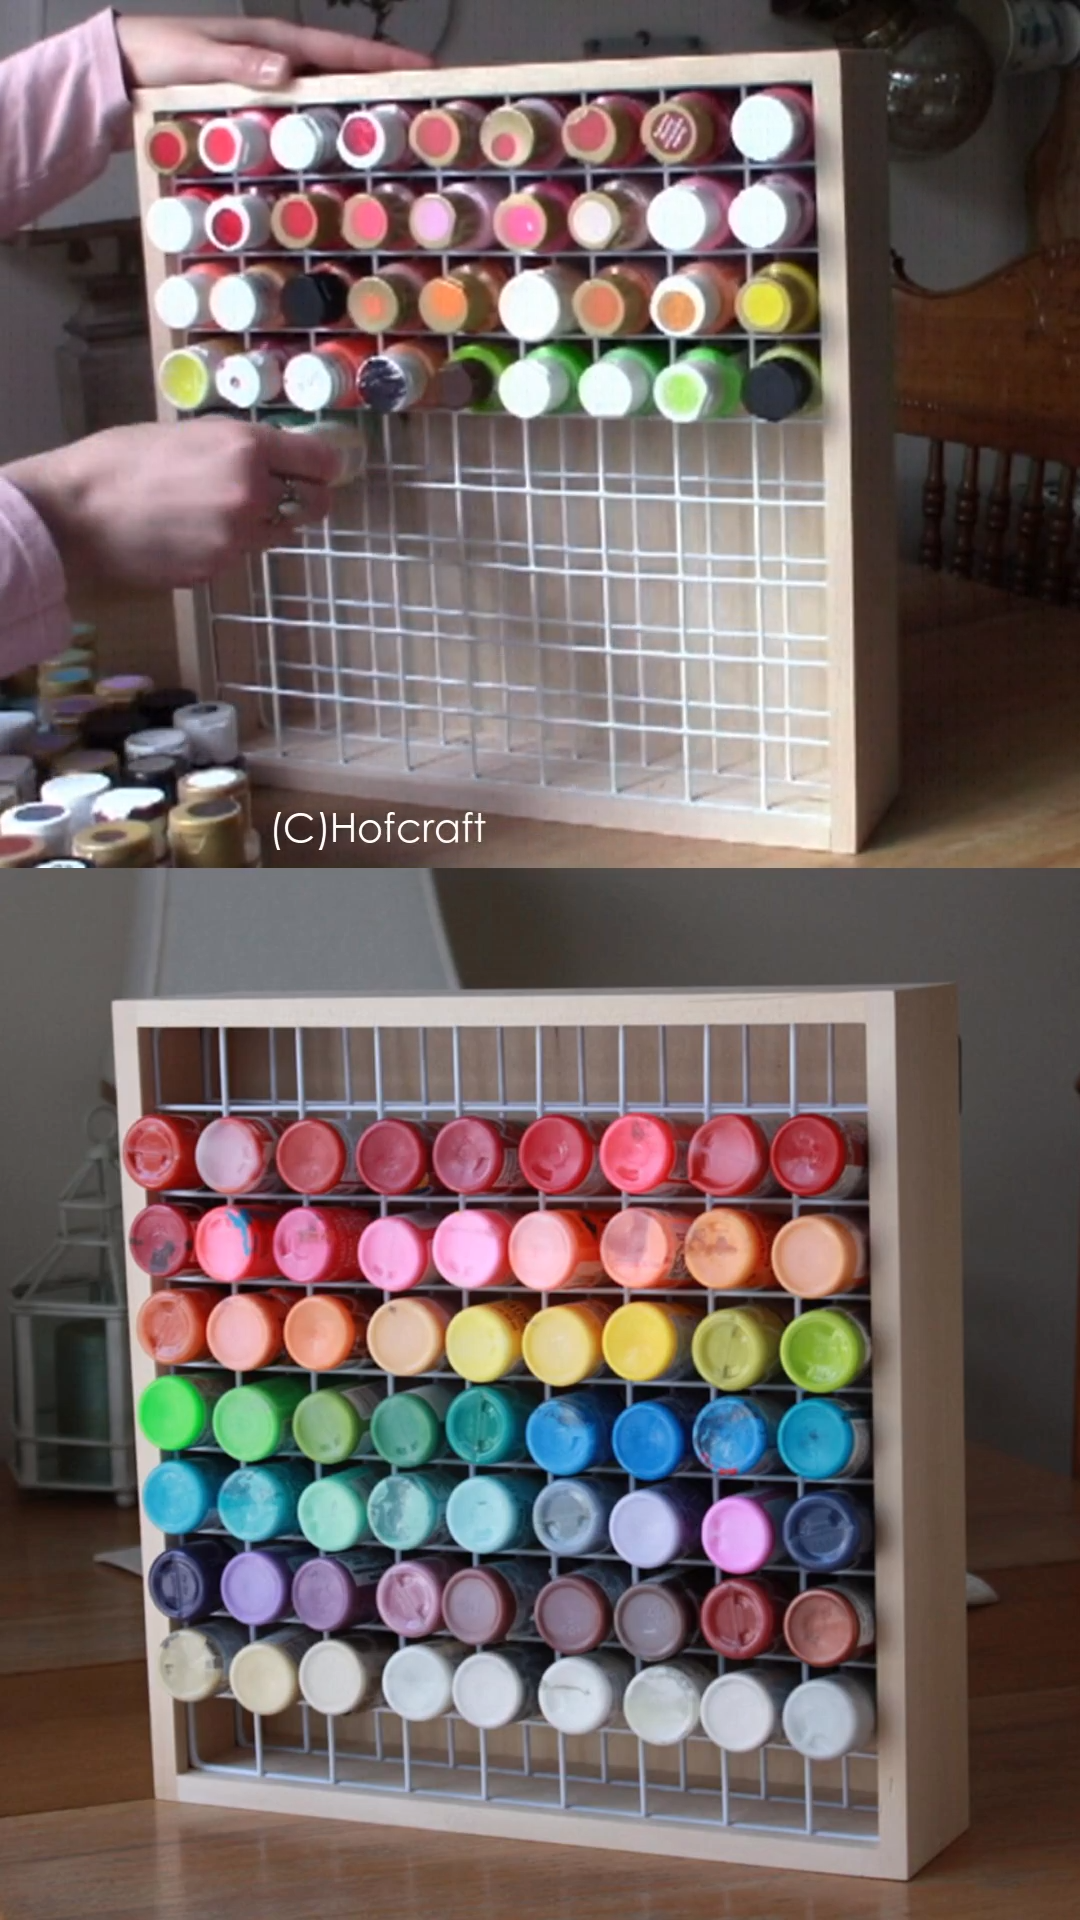 Paint Storage Rack Organizer images